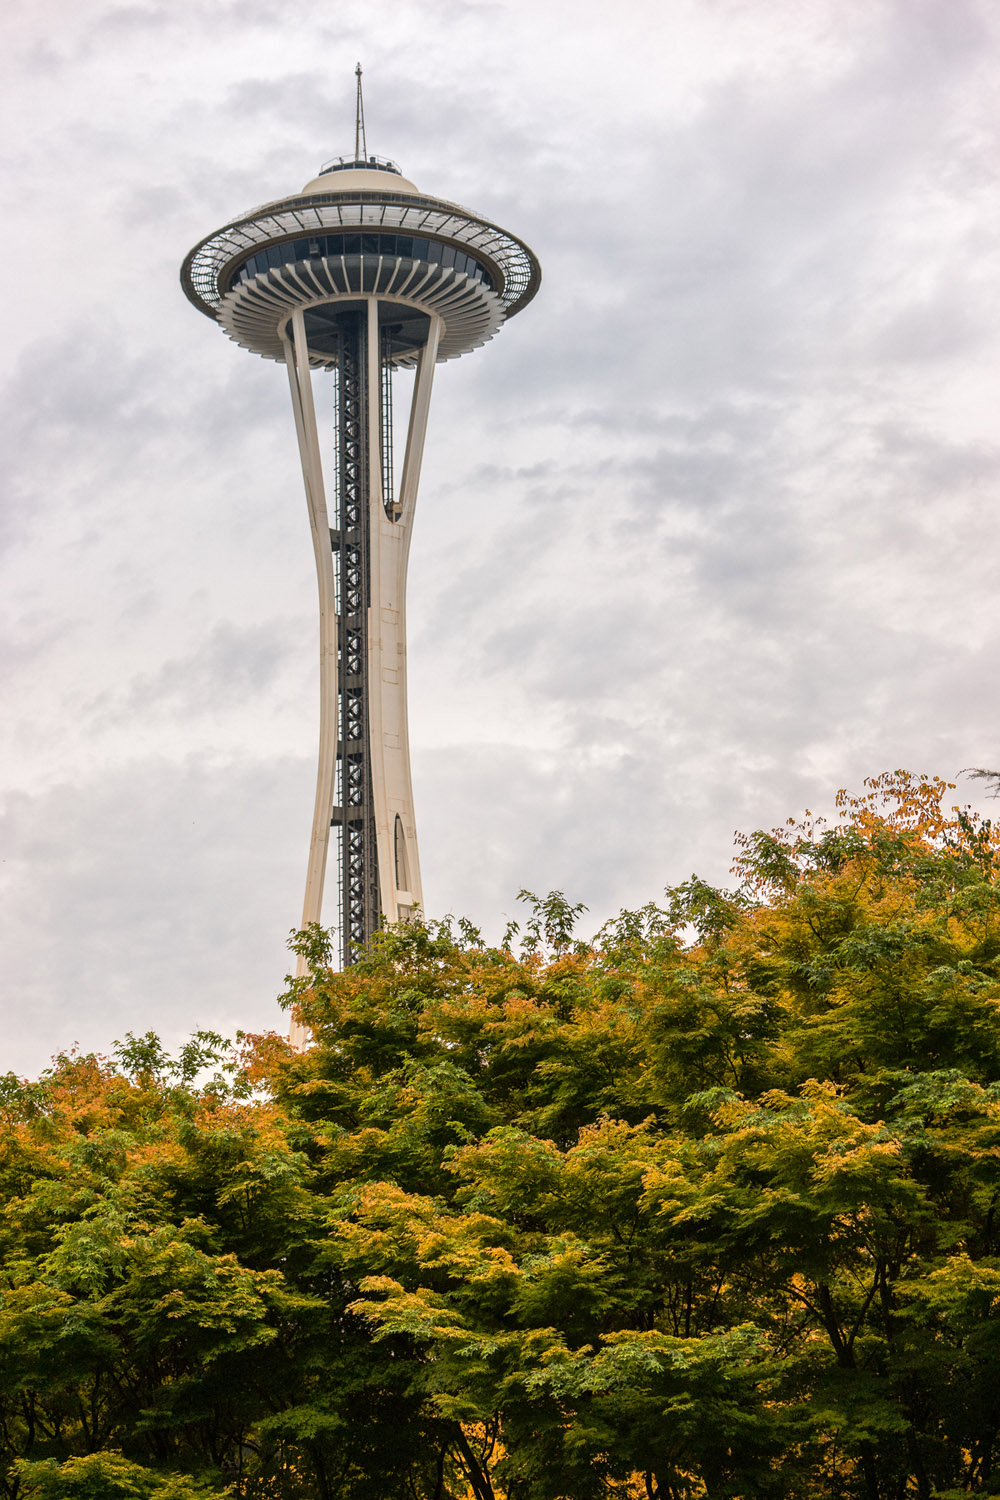 Wasim Muklashy Photography_Samsung NX500_DPReview_PIX2015_Seattle_Washington_15.jpg